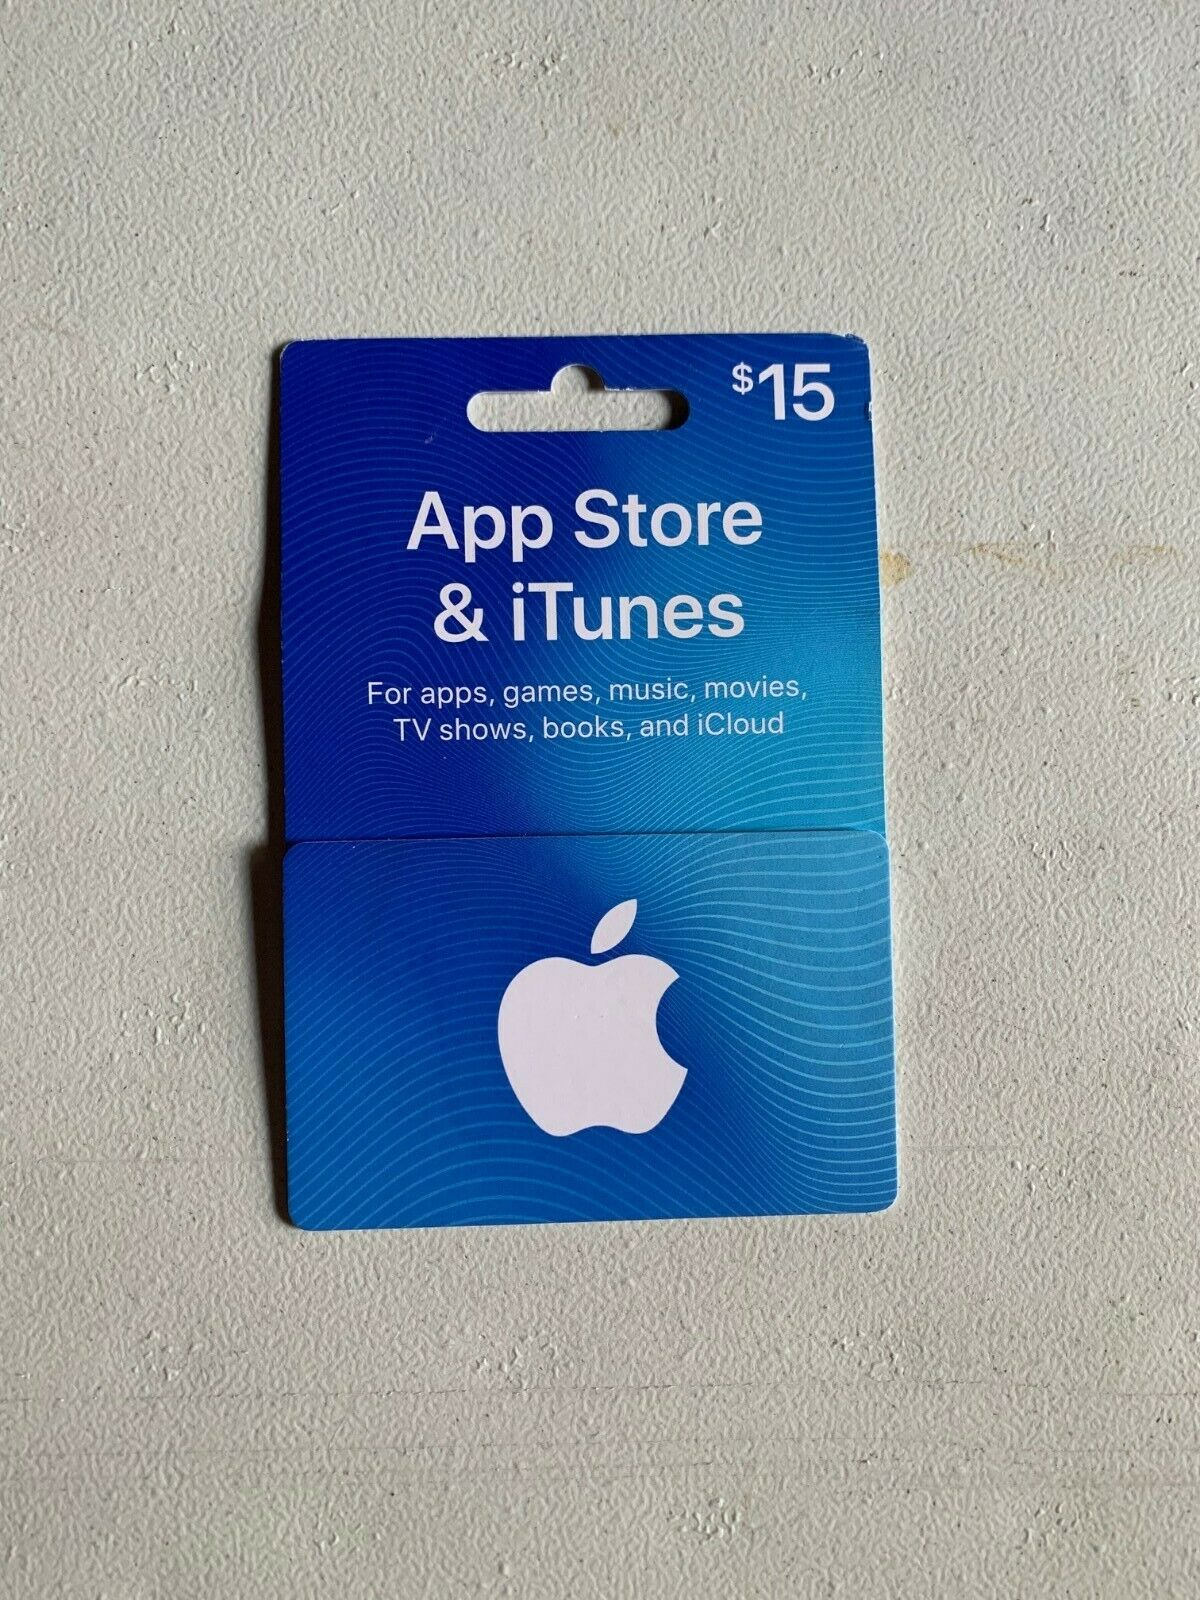 15 Apple App Store And ITunes Gift Card - $12.50